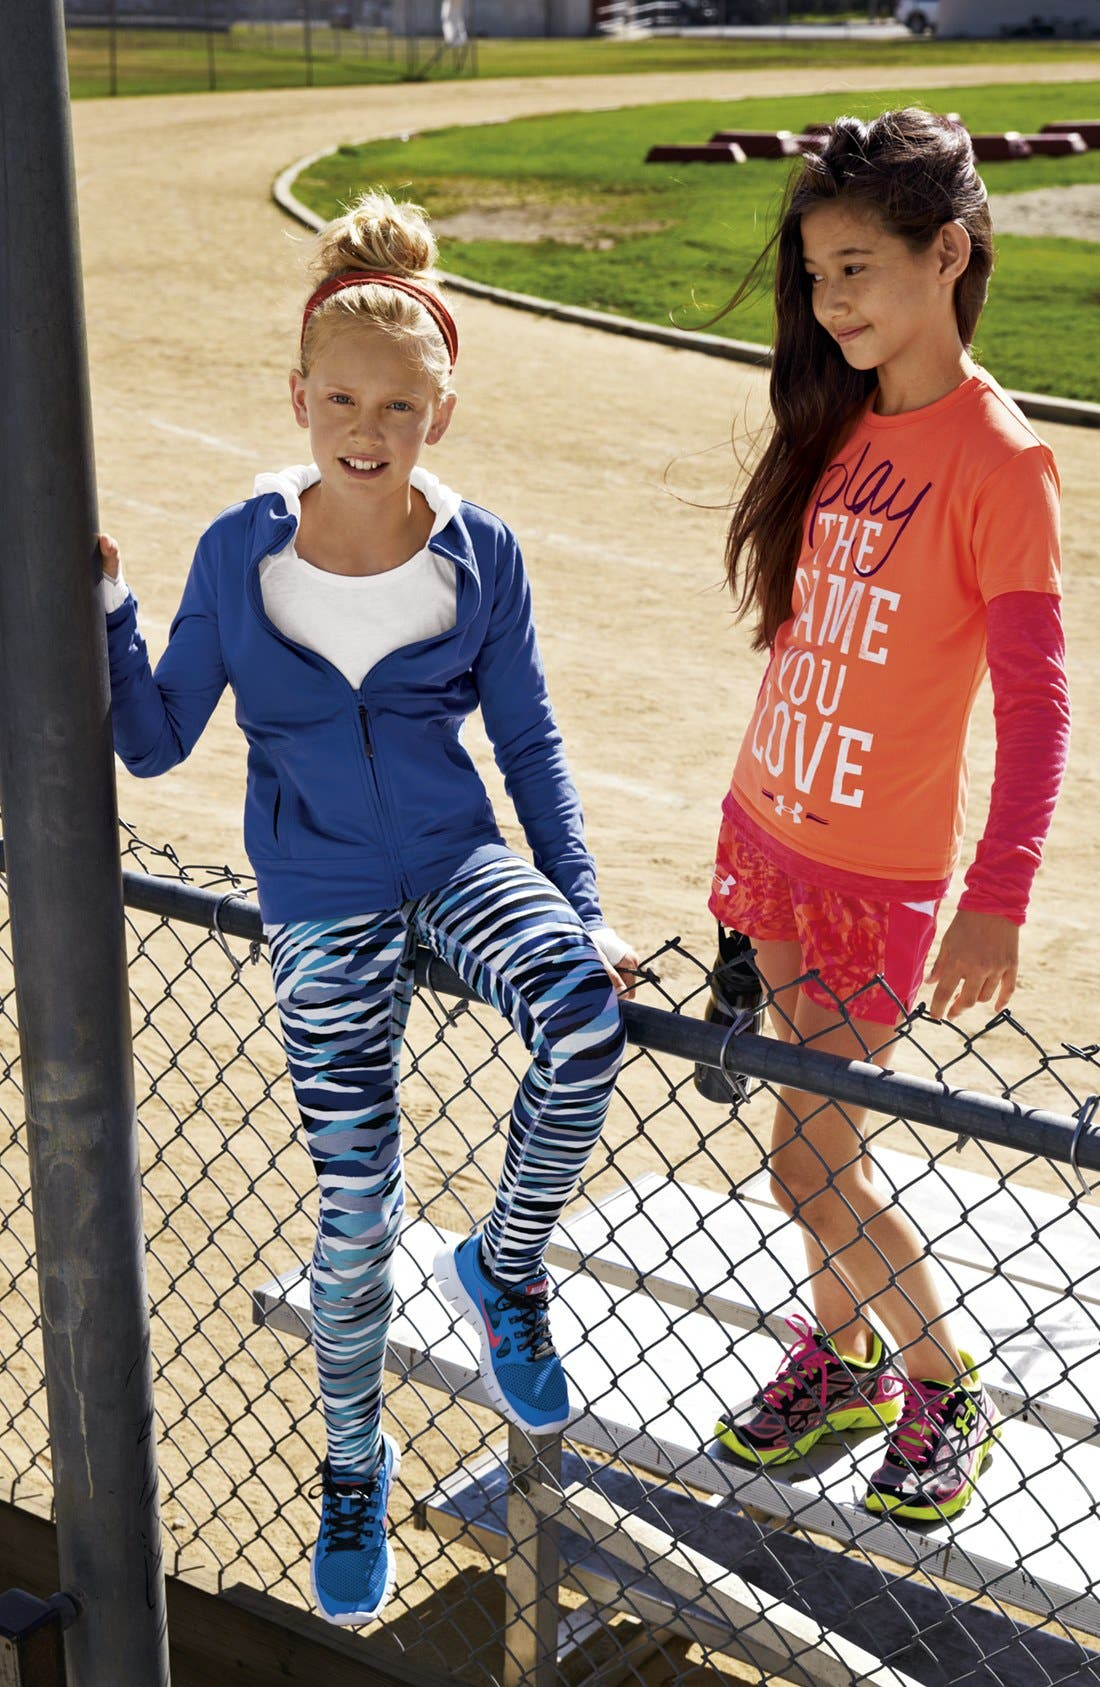 Alternate Image 3  - Under Armour 'Play the Game' Graphic Tee (Big Girls)